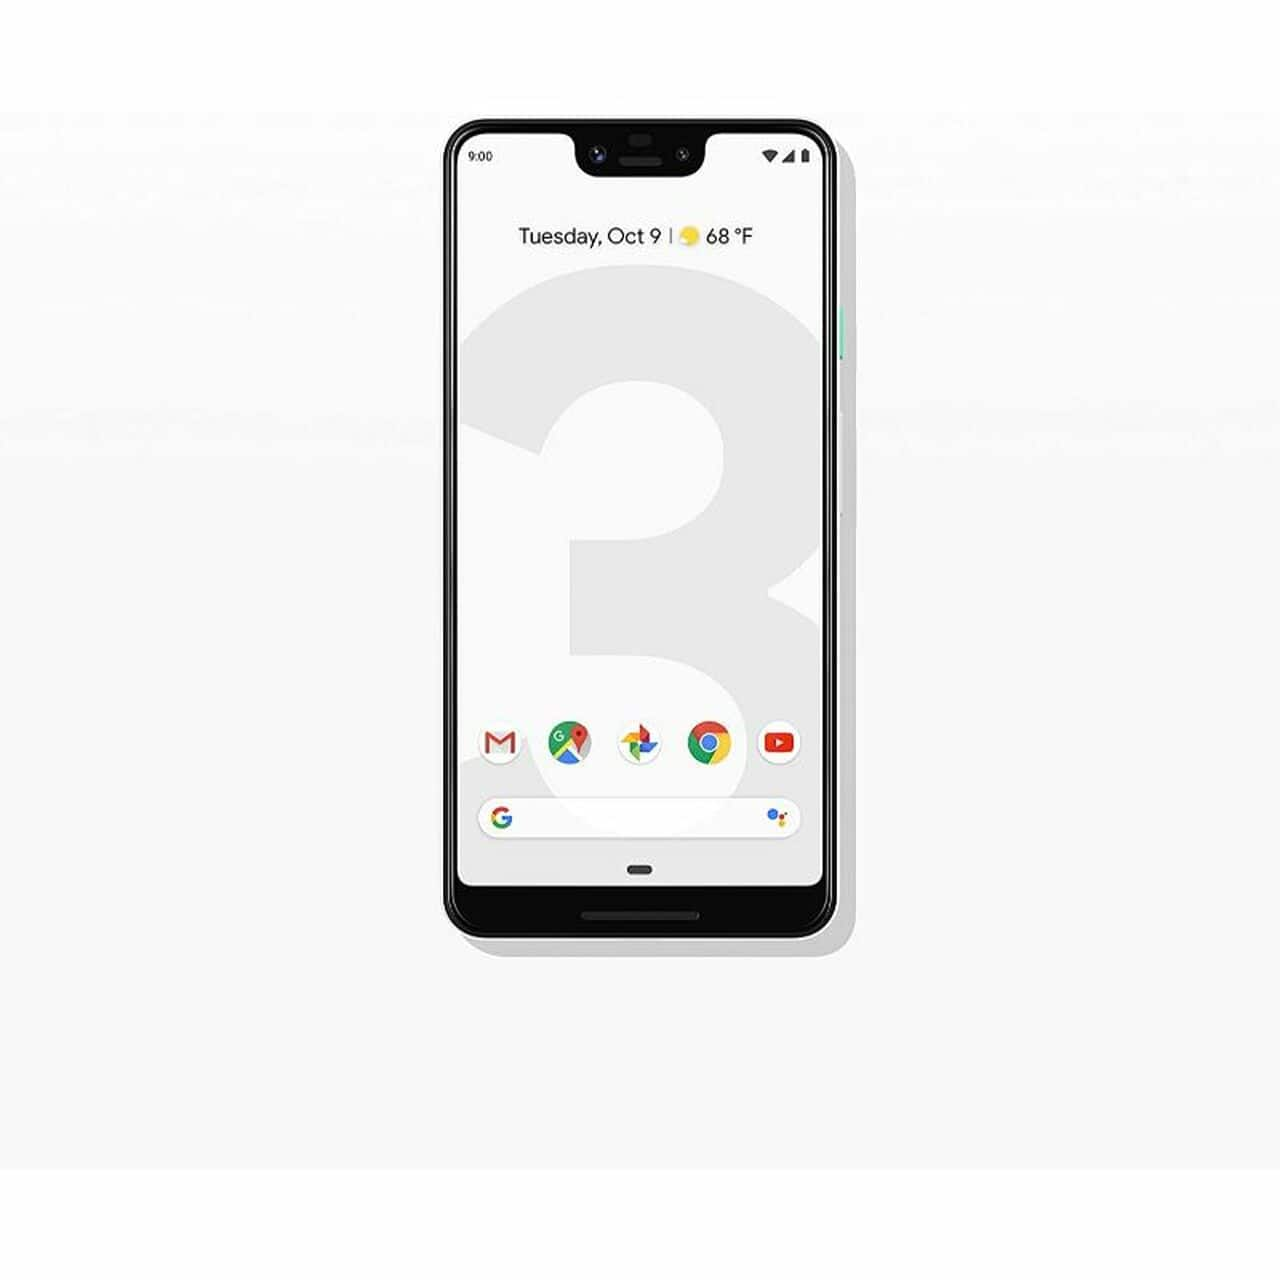 Google Pixel 3 XL 64GB Unlocked Android Phone (White) $180 at DailySteals